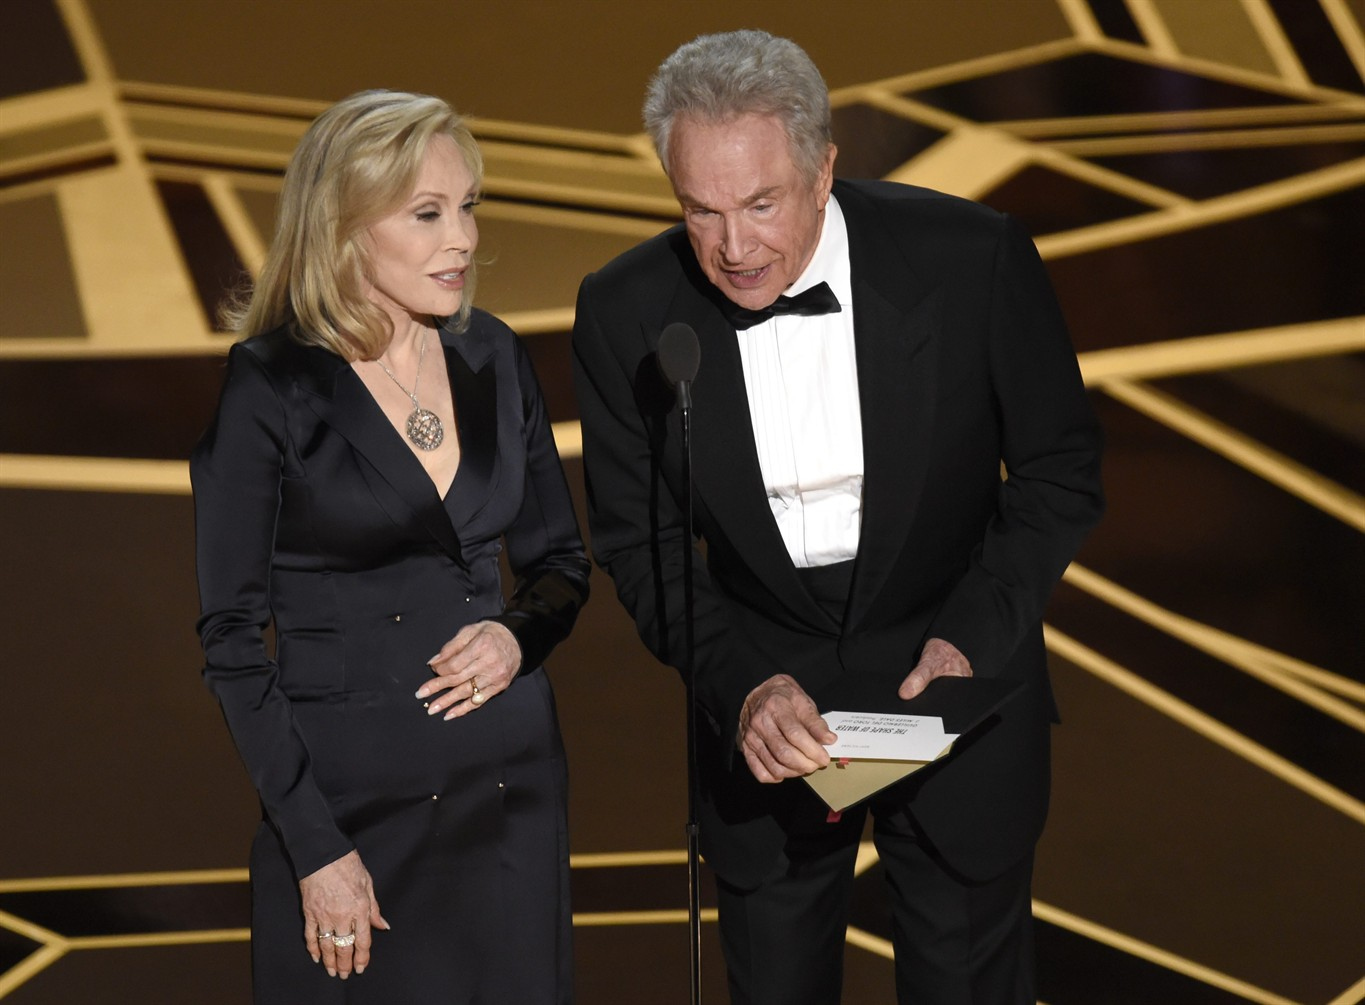 Warren Beatty, Faye Dunaway return to Oscars for Best Picture do-over